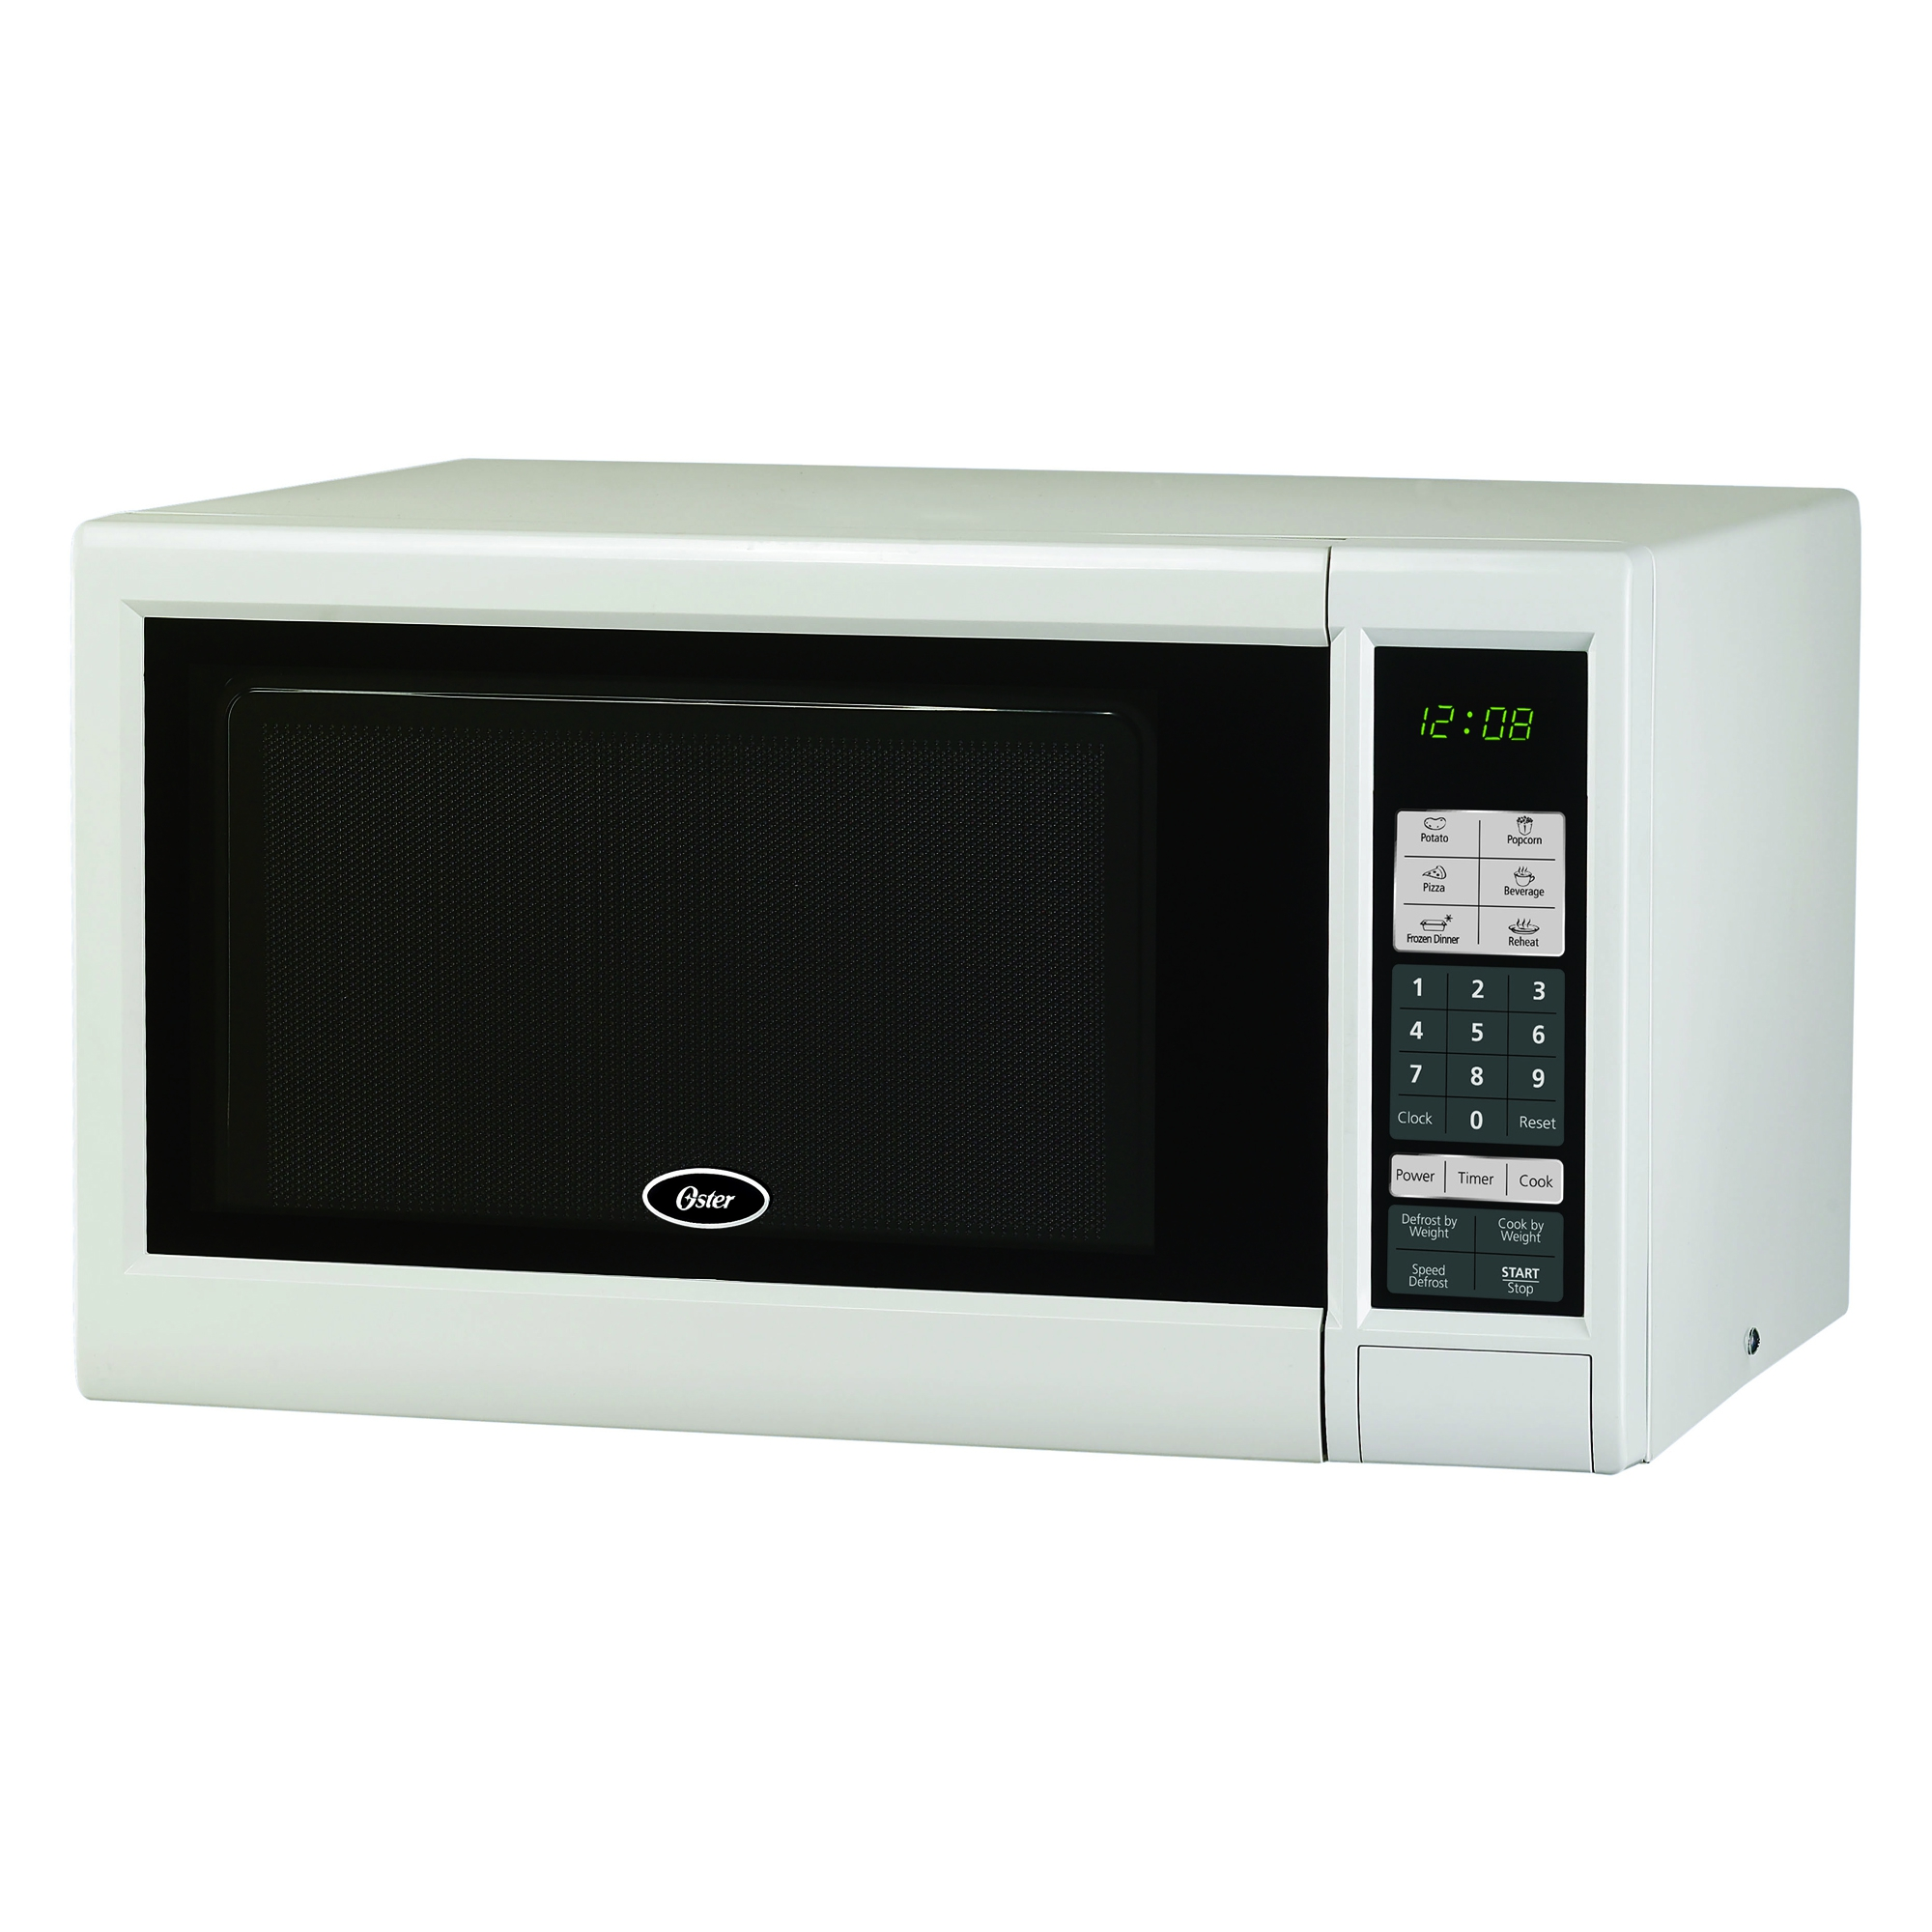 Oster OGM41101 1.1 Cu. Ft. 1000w Digital Microwave Oven White